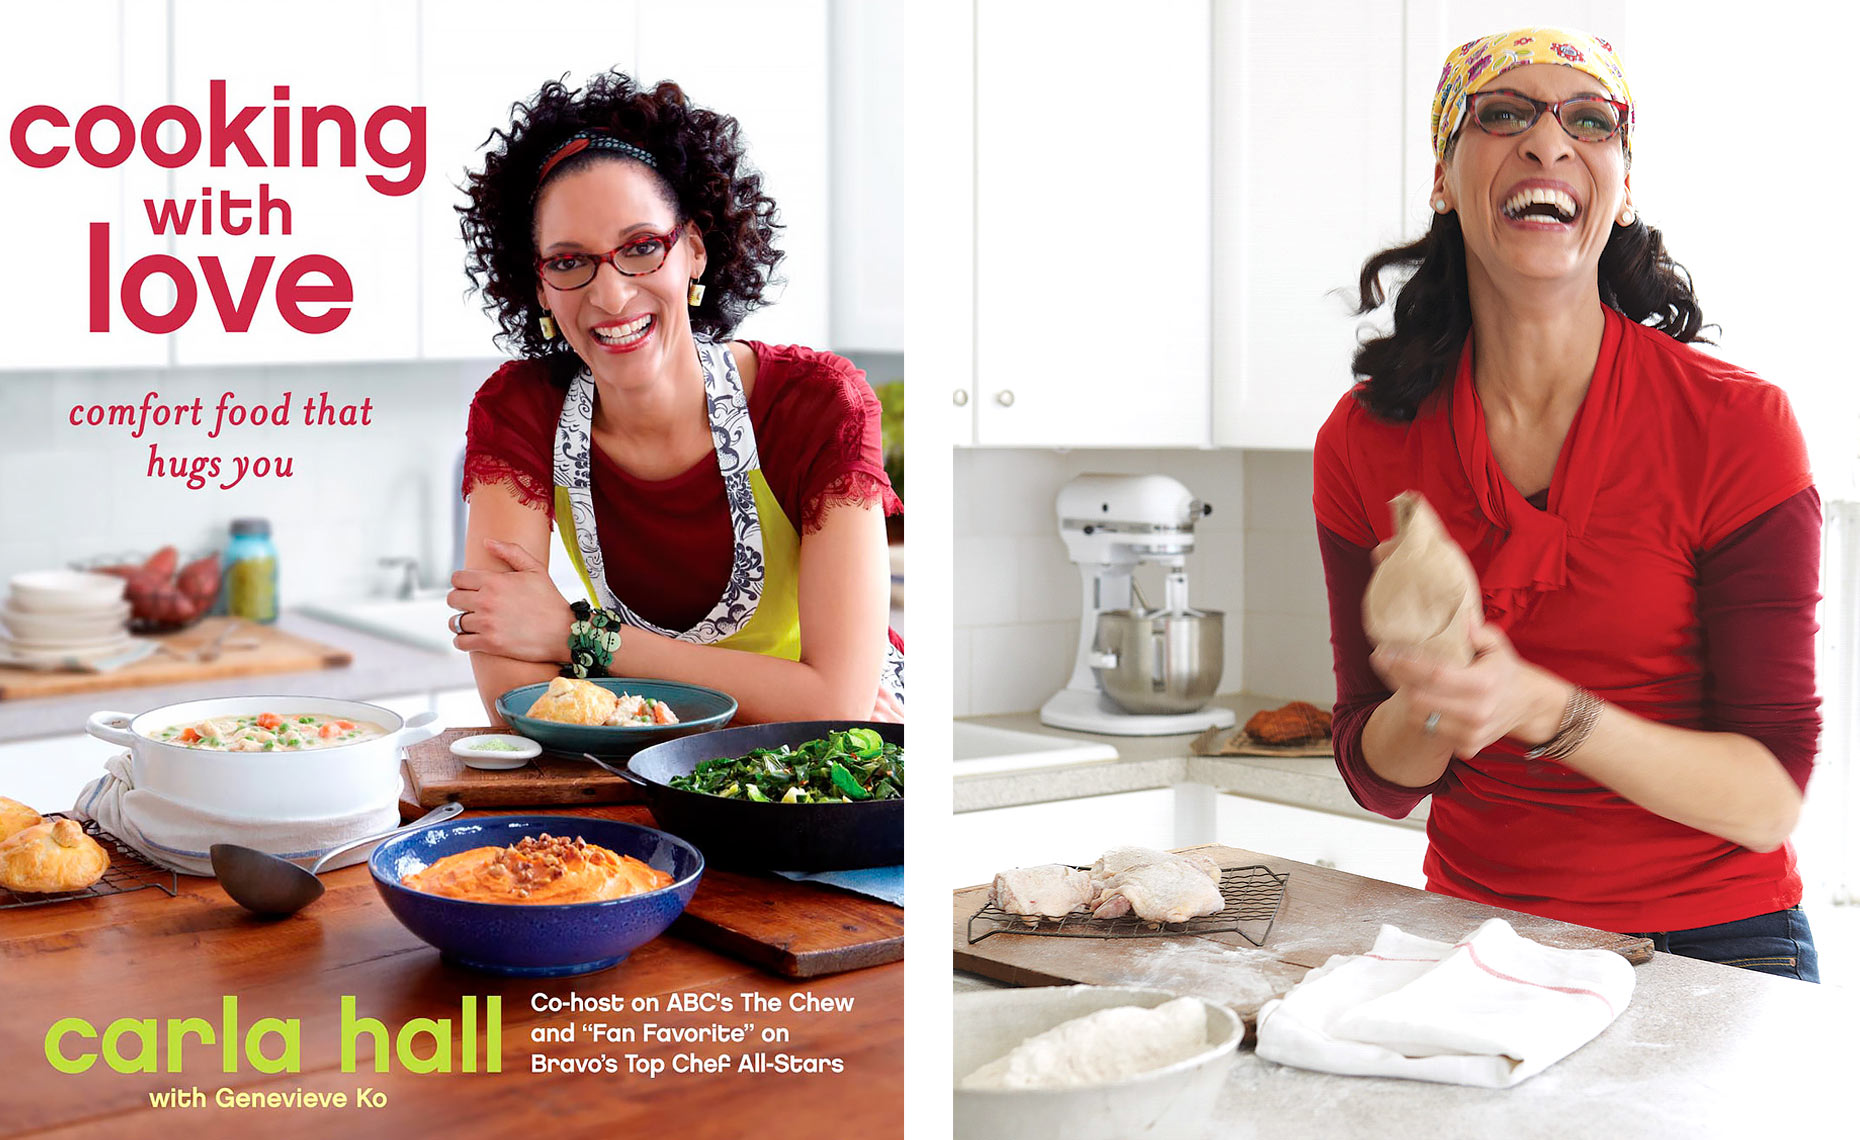 Carla-Hall-Cookbook-pg1